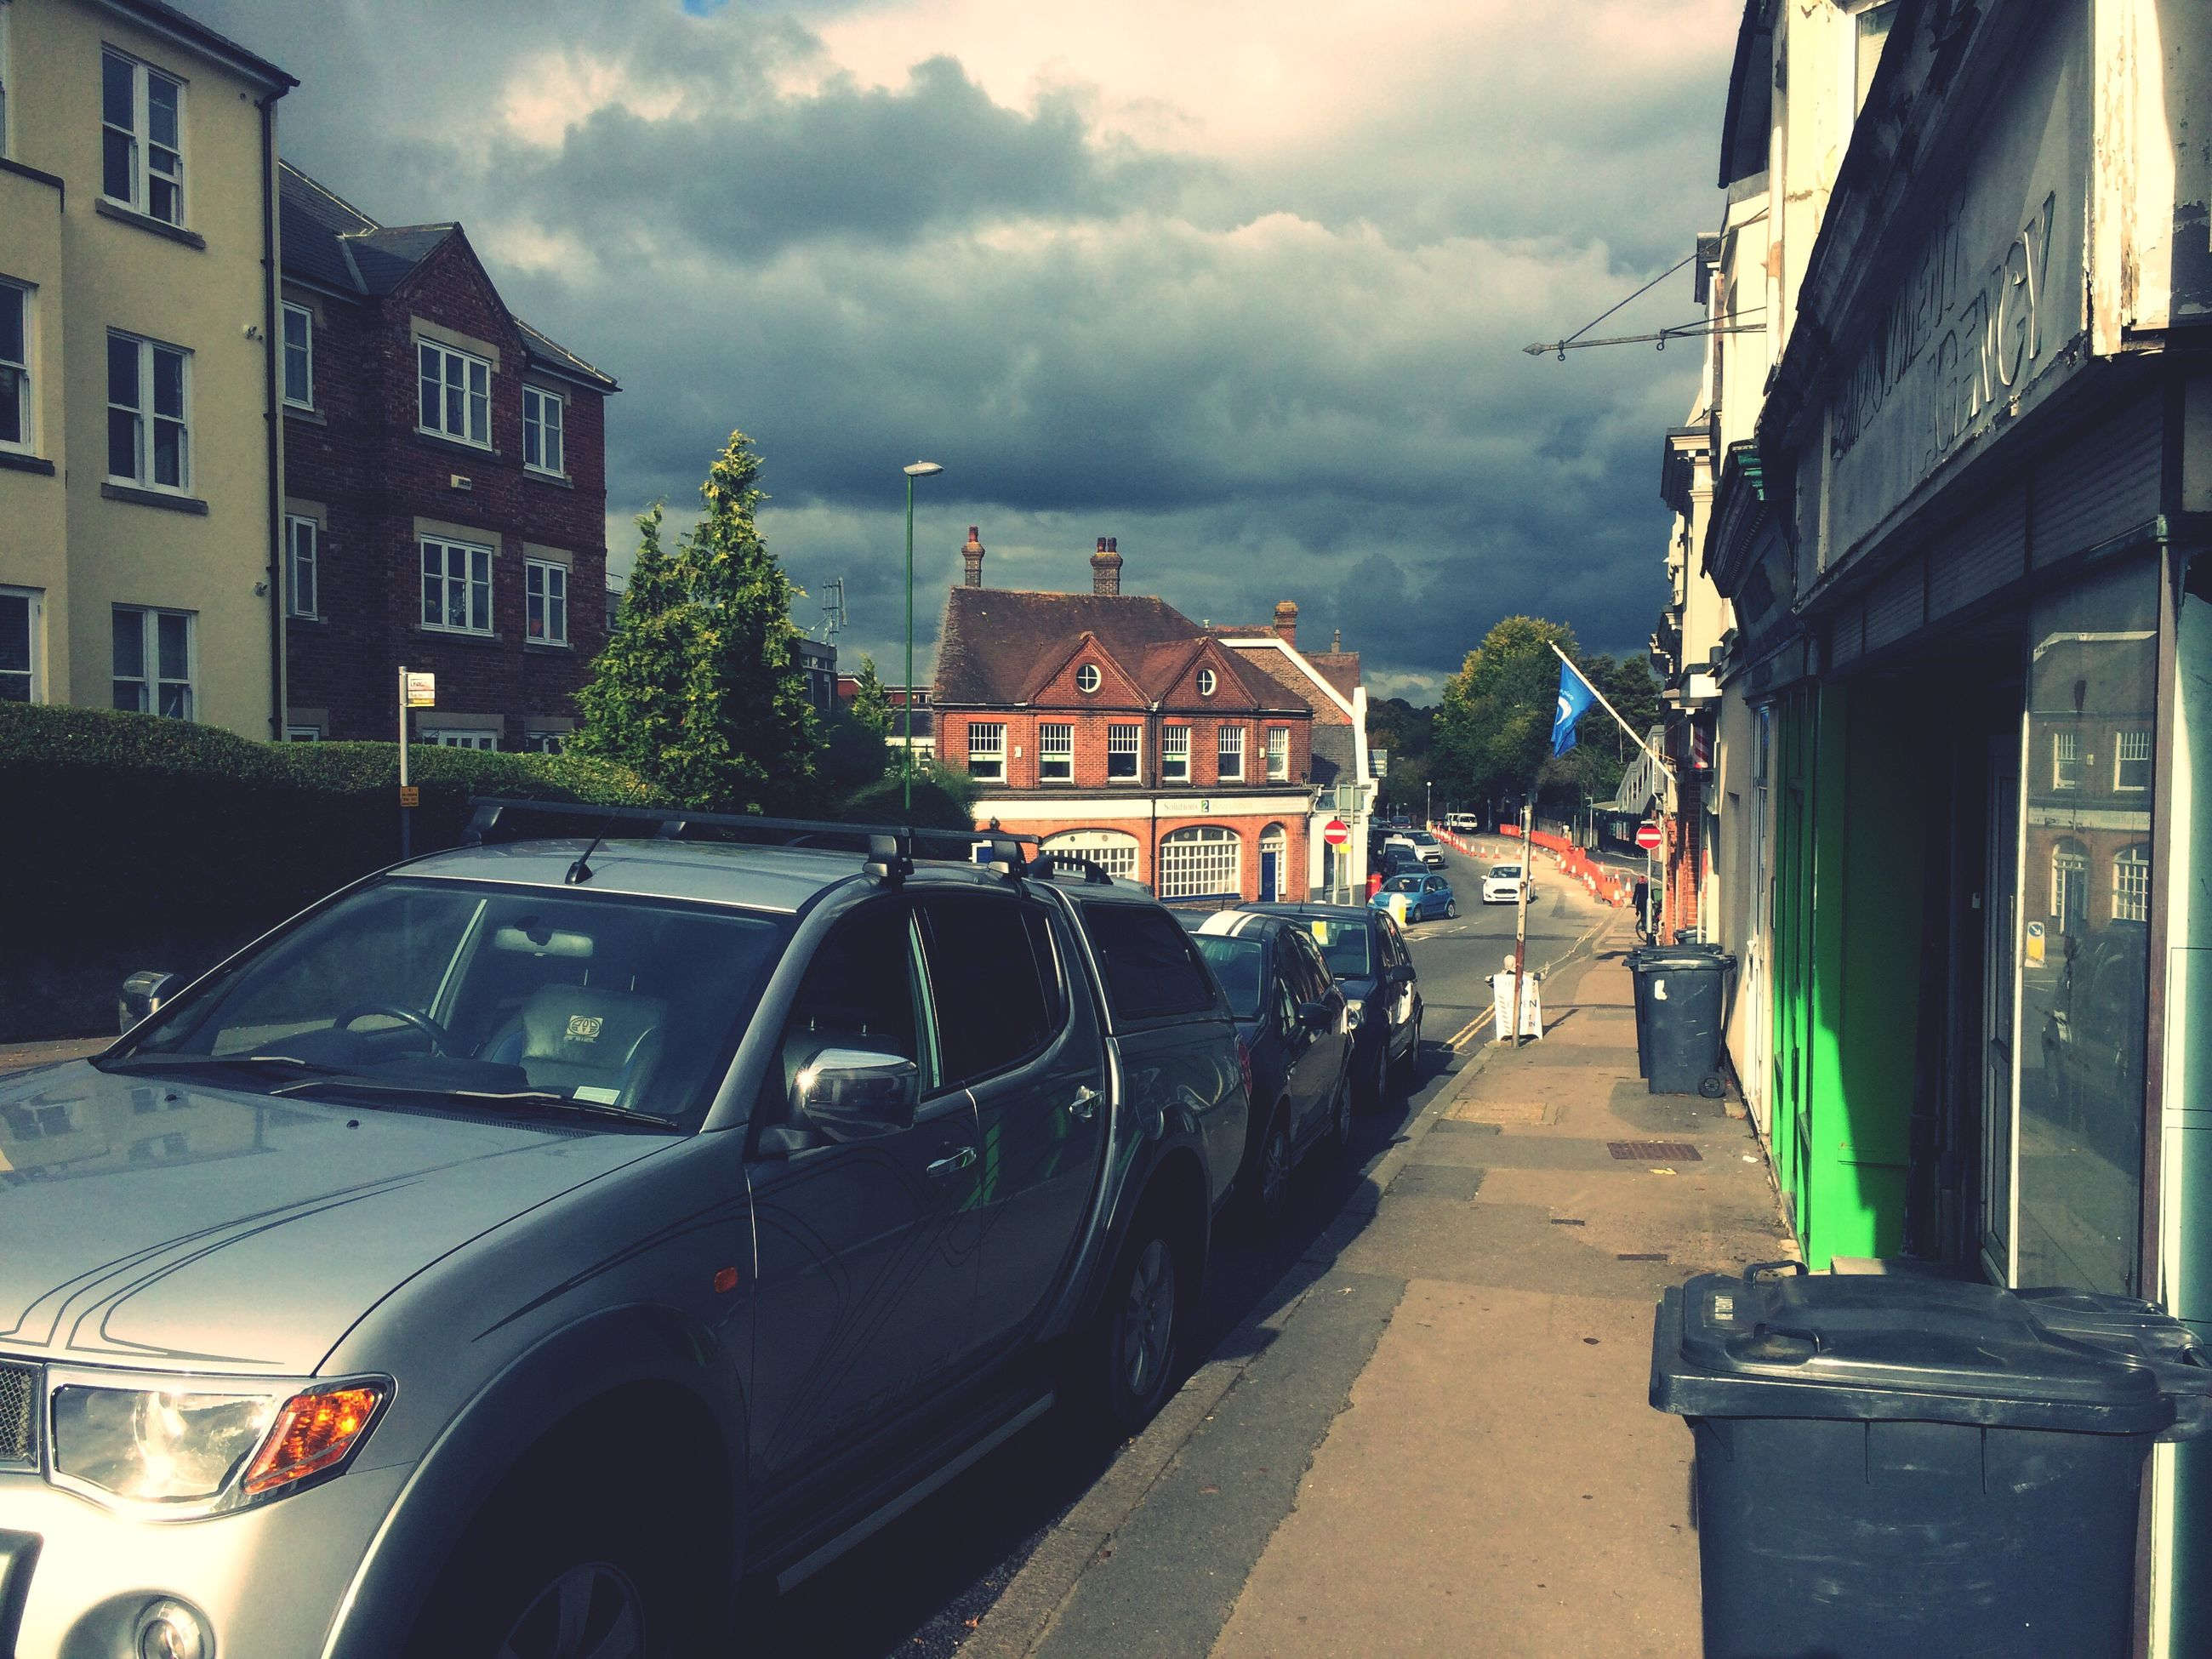 building exterior, architecture, car, transportation, built structure, land vehicle, mode of transport, street, road, city, illuminated, sky, city street, cloud - sky, parking, cloud, city life, stationary, day, storm cloud, tail light, motor vehicle, town